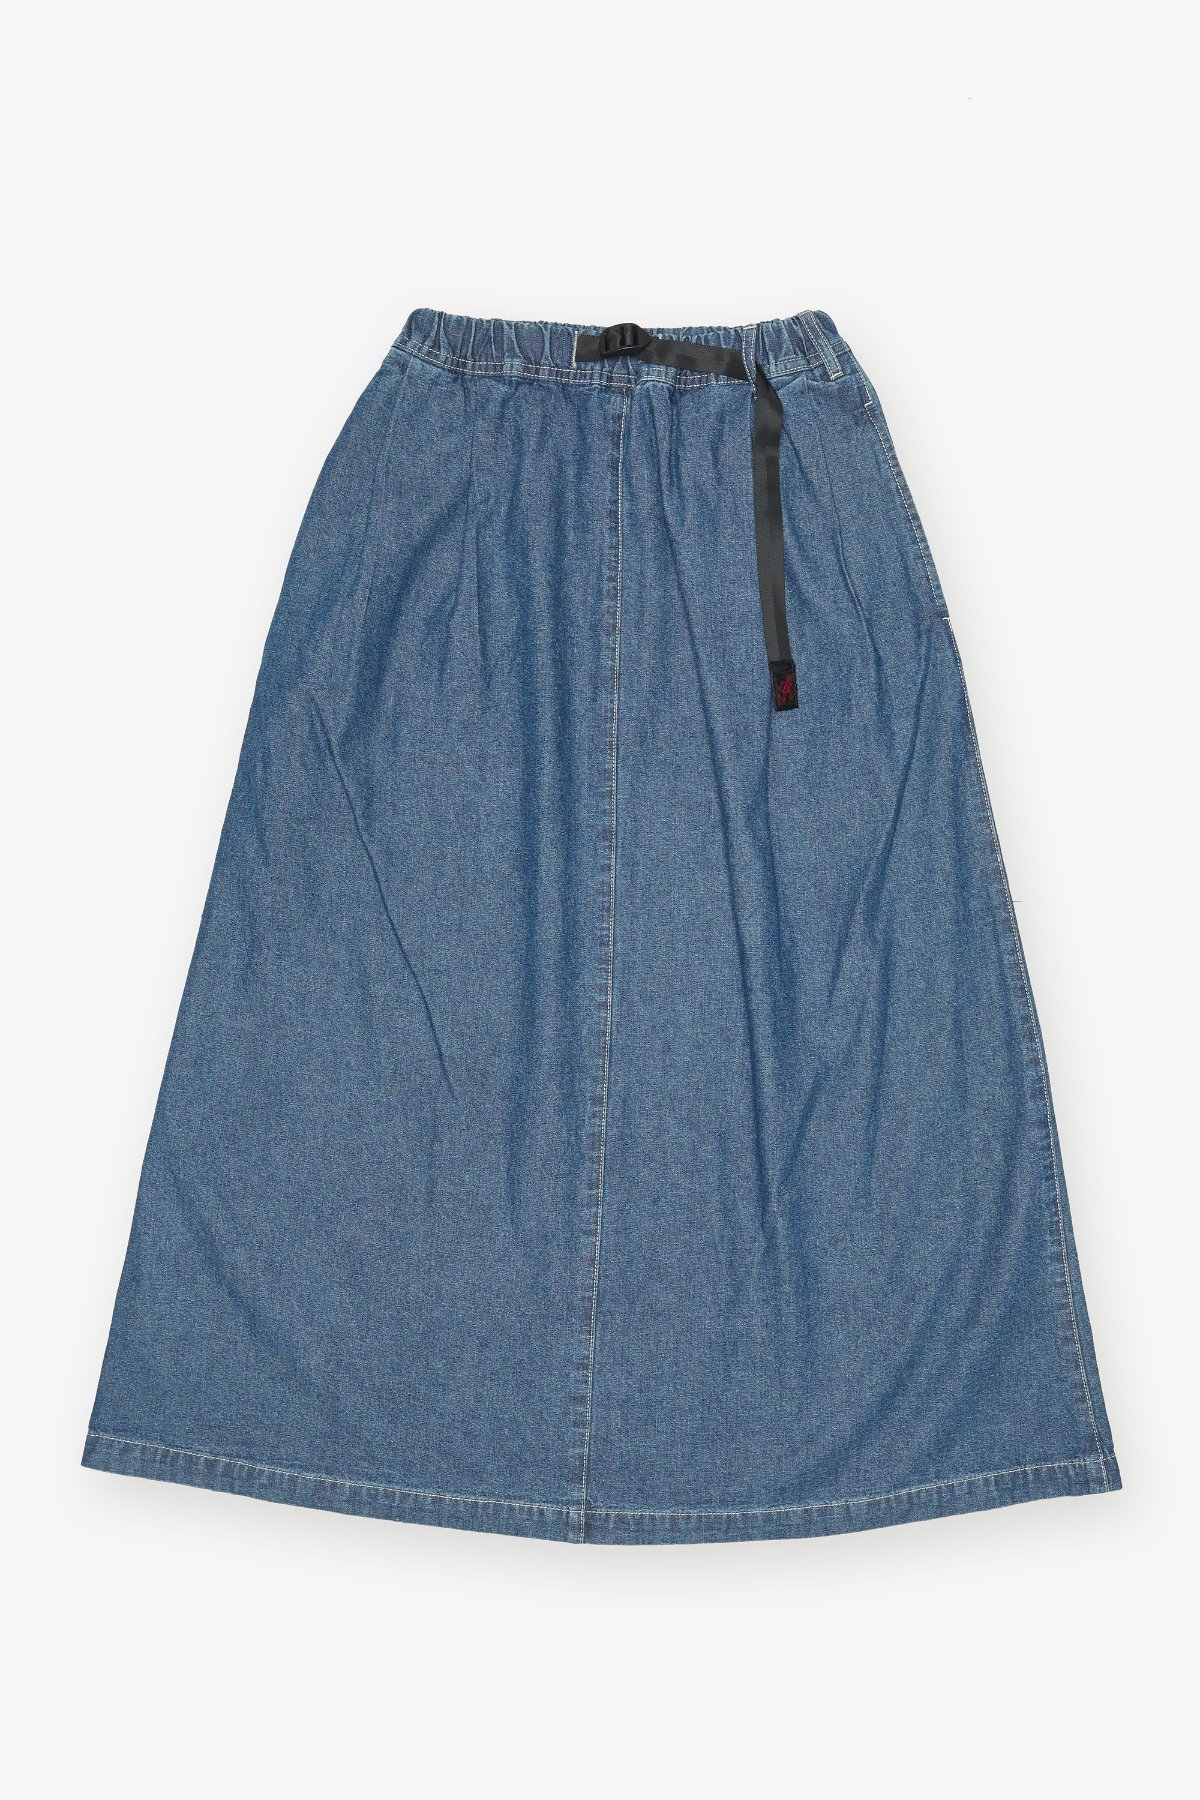 LIGHT DENIM LONG FLARE SKIRT MEDIUM USED